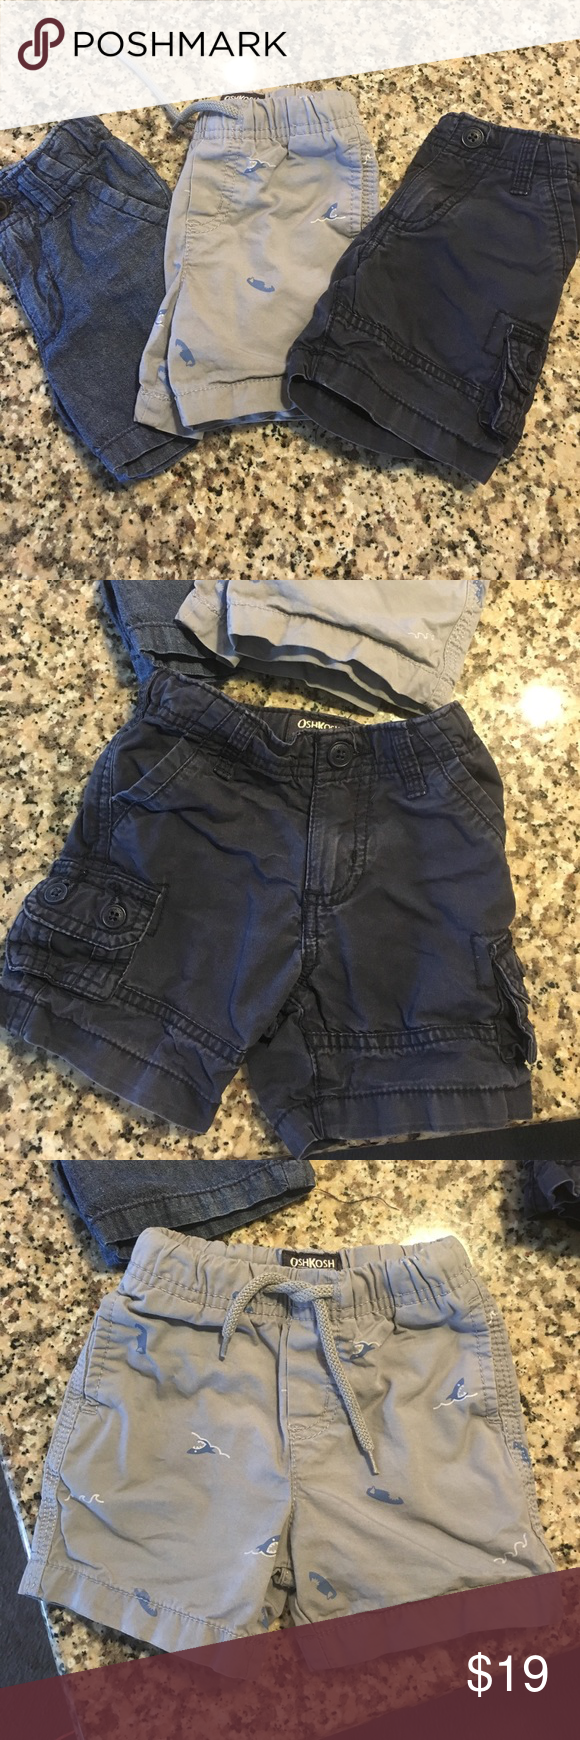 Set of 3 OshKosh boys shorts Perfect for summer! Set of boys shorts. The navy cargos and chambray shorts both have an adjustable waist (inside). The shark pair are elastic w/ a tie front. Osh Kosh Bottoms Shorts